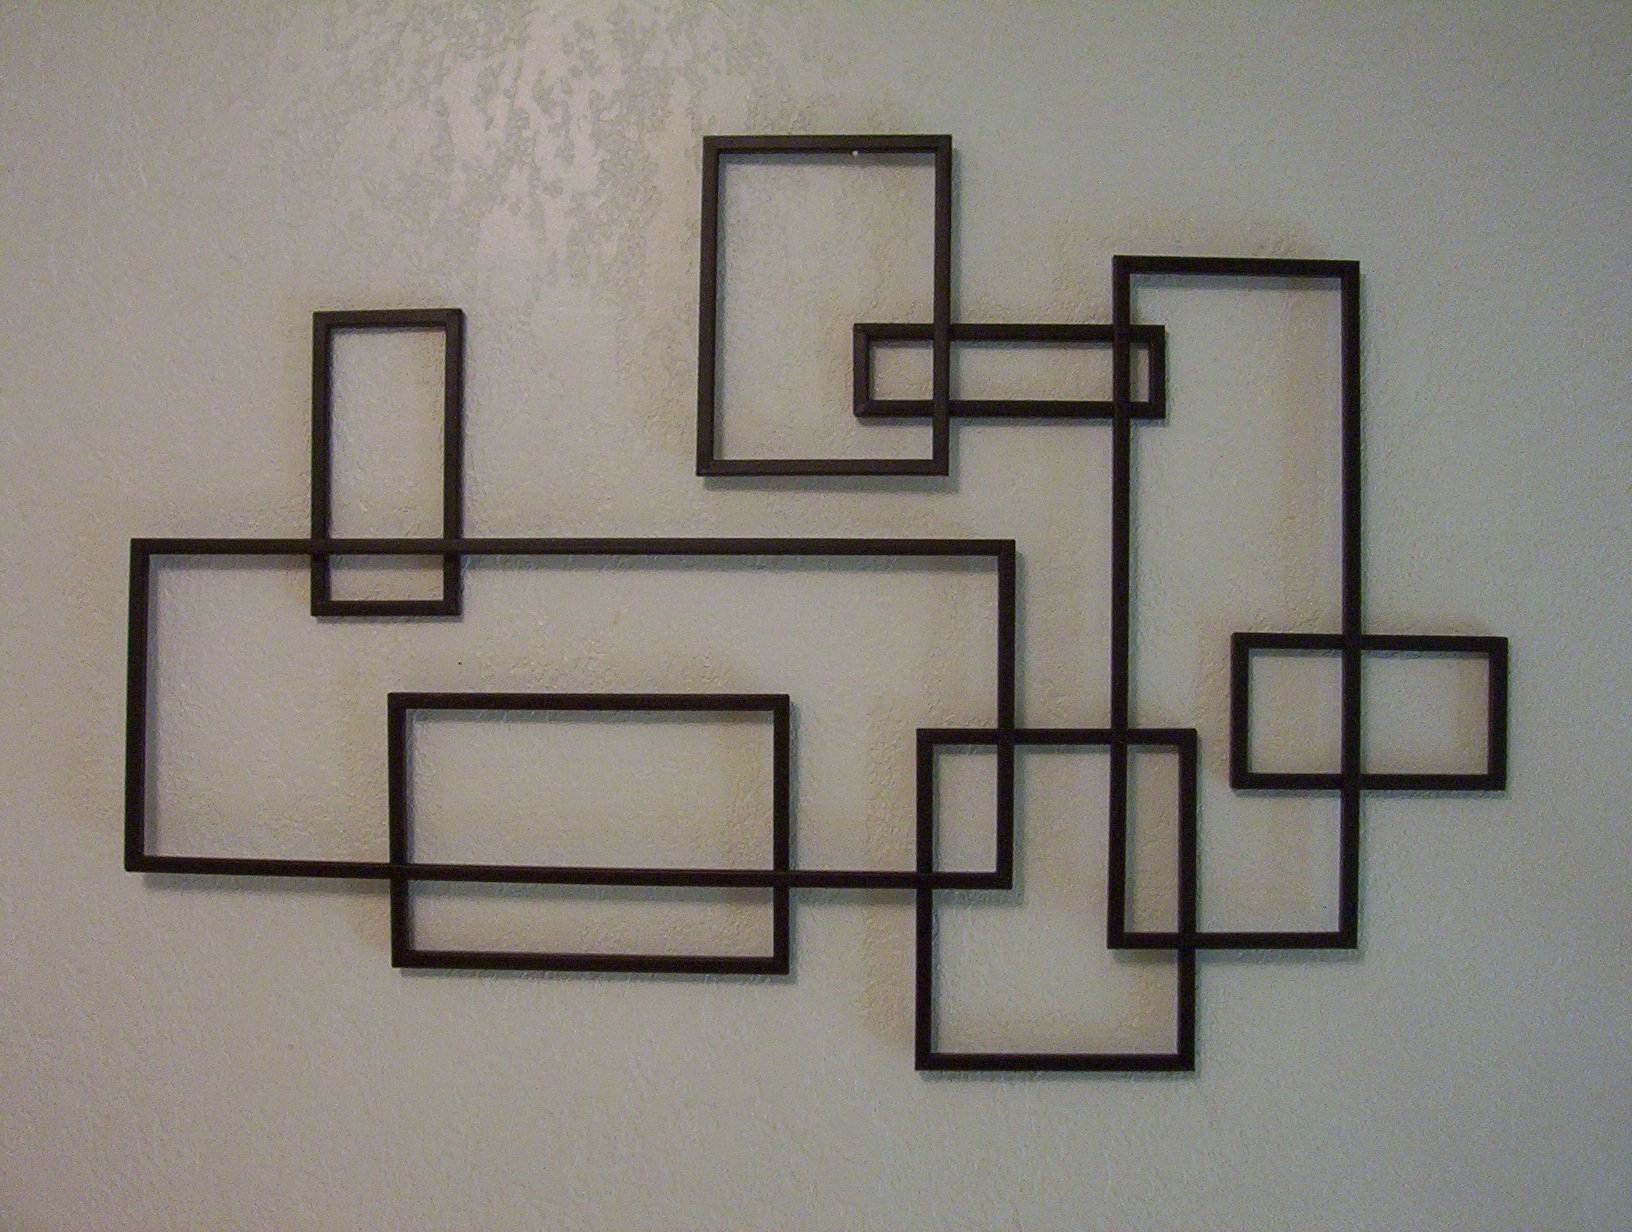 Famous Mid Century Modern Wall Decor Ideas — Joanne Russo Homesjoanne Russo Intended For Mid Century Wall Art (View 9 of 15)